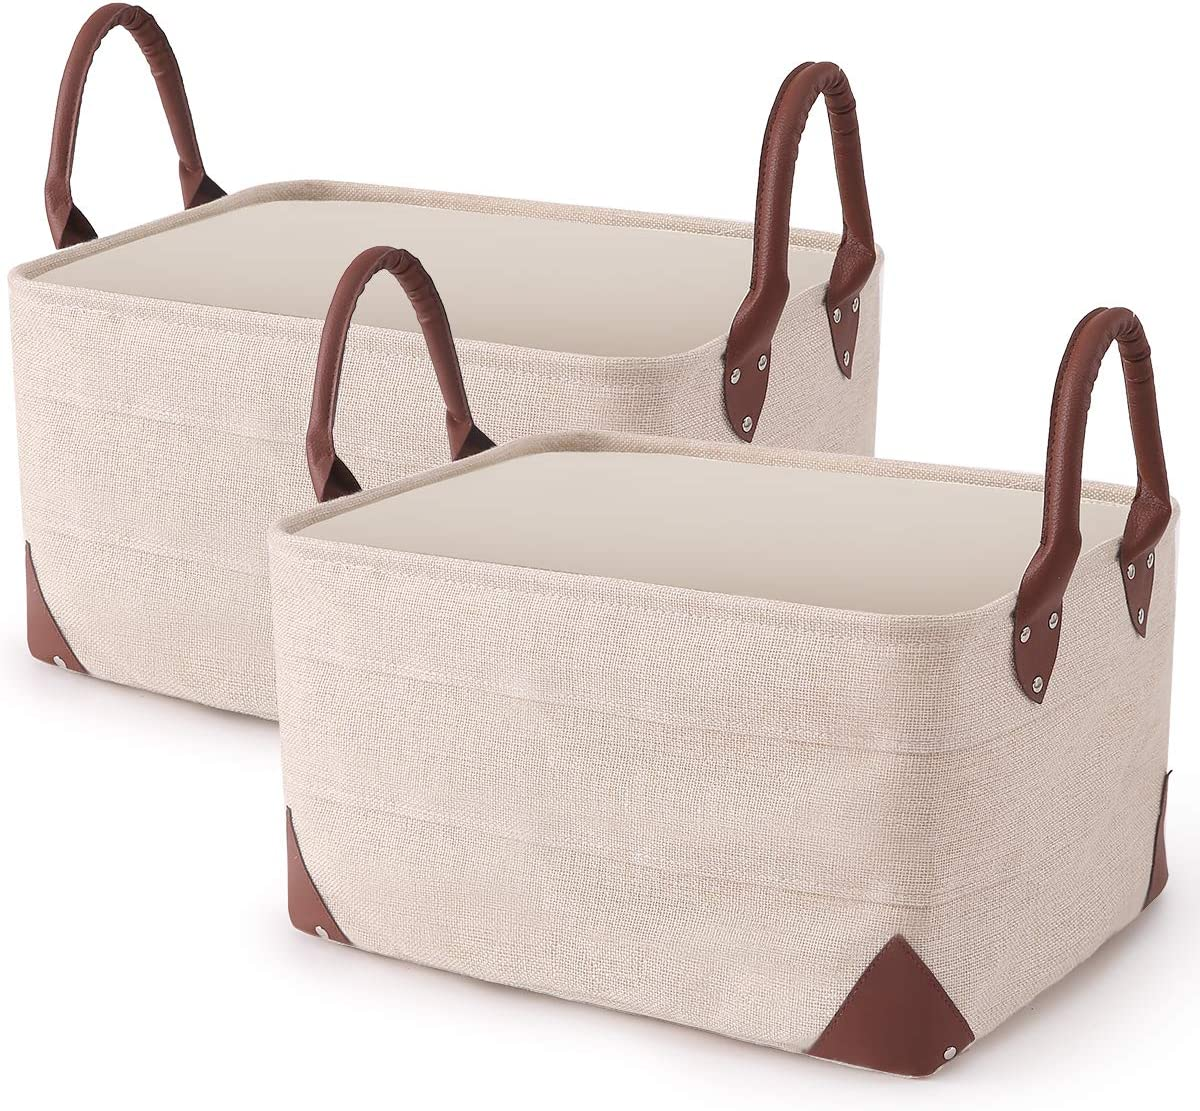 2 Pack Collapsible Storage Bin - Natural Linen Fabric Storage Basket with PU Leather Handles for Home Office Organizing Linen Closet Organizer -16 x 12 x 8.3 inches (Beige)